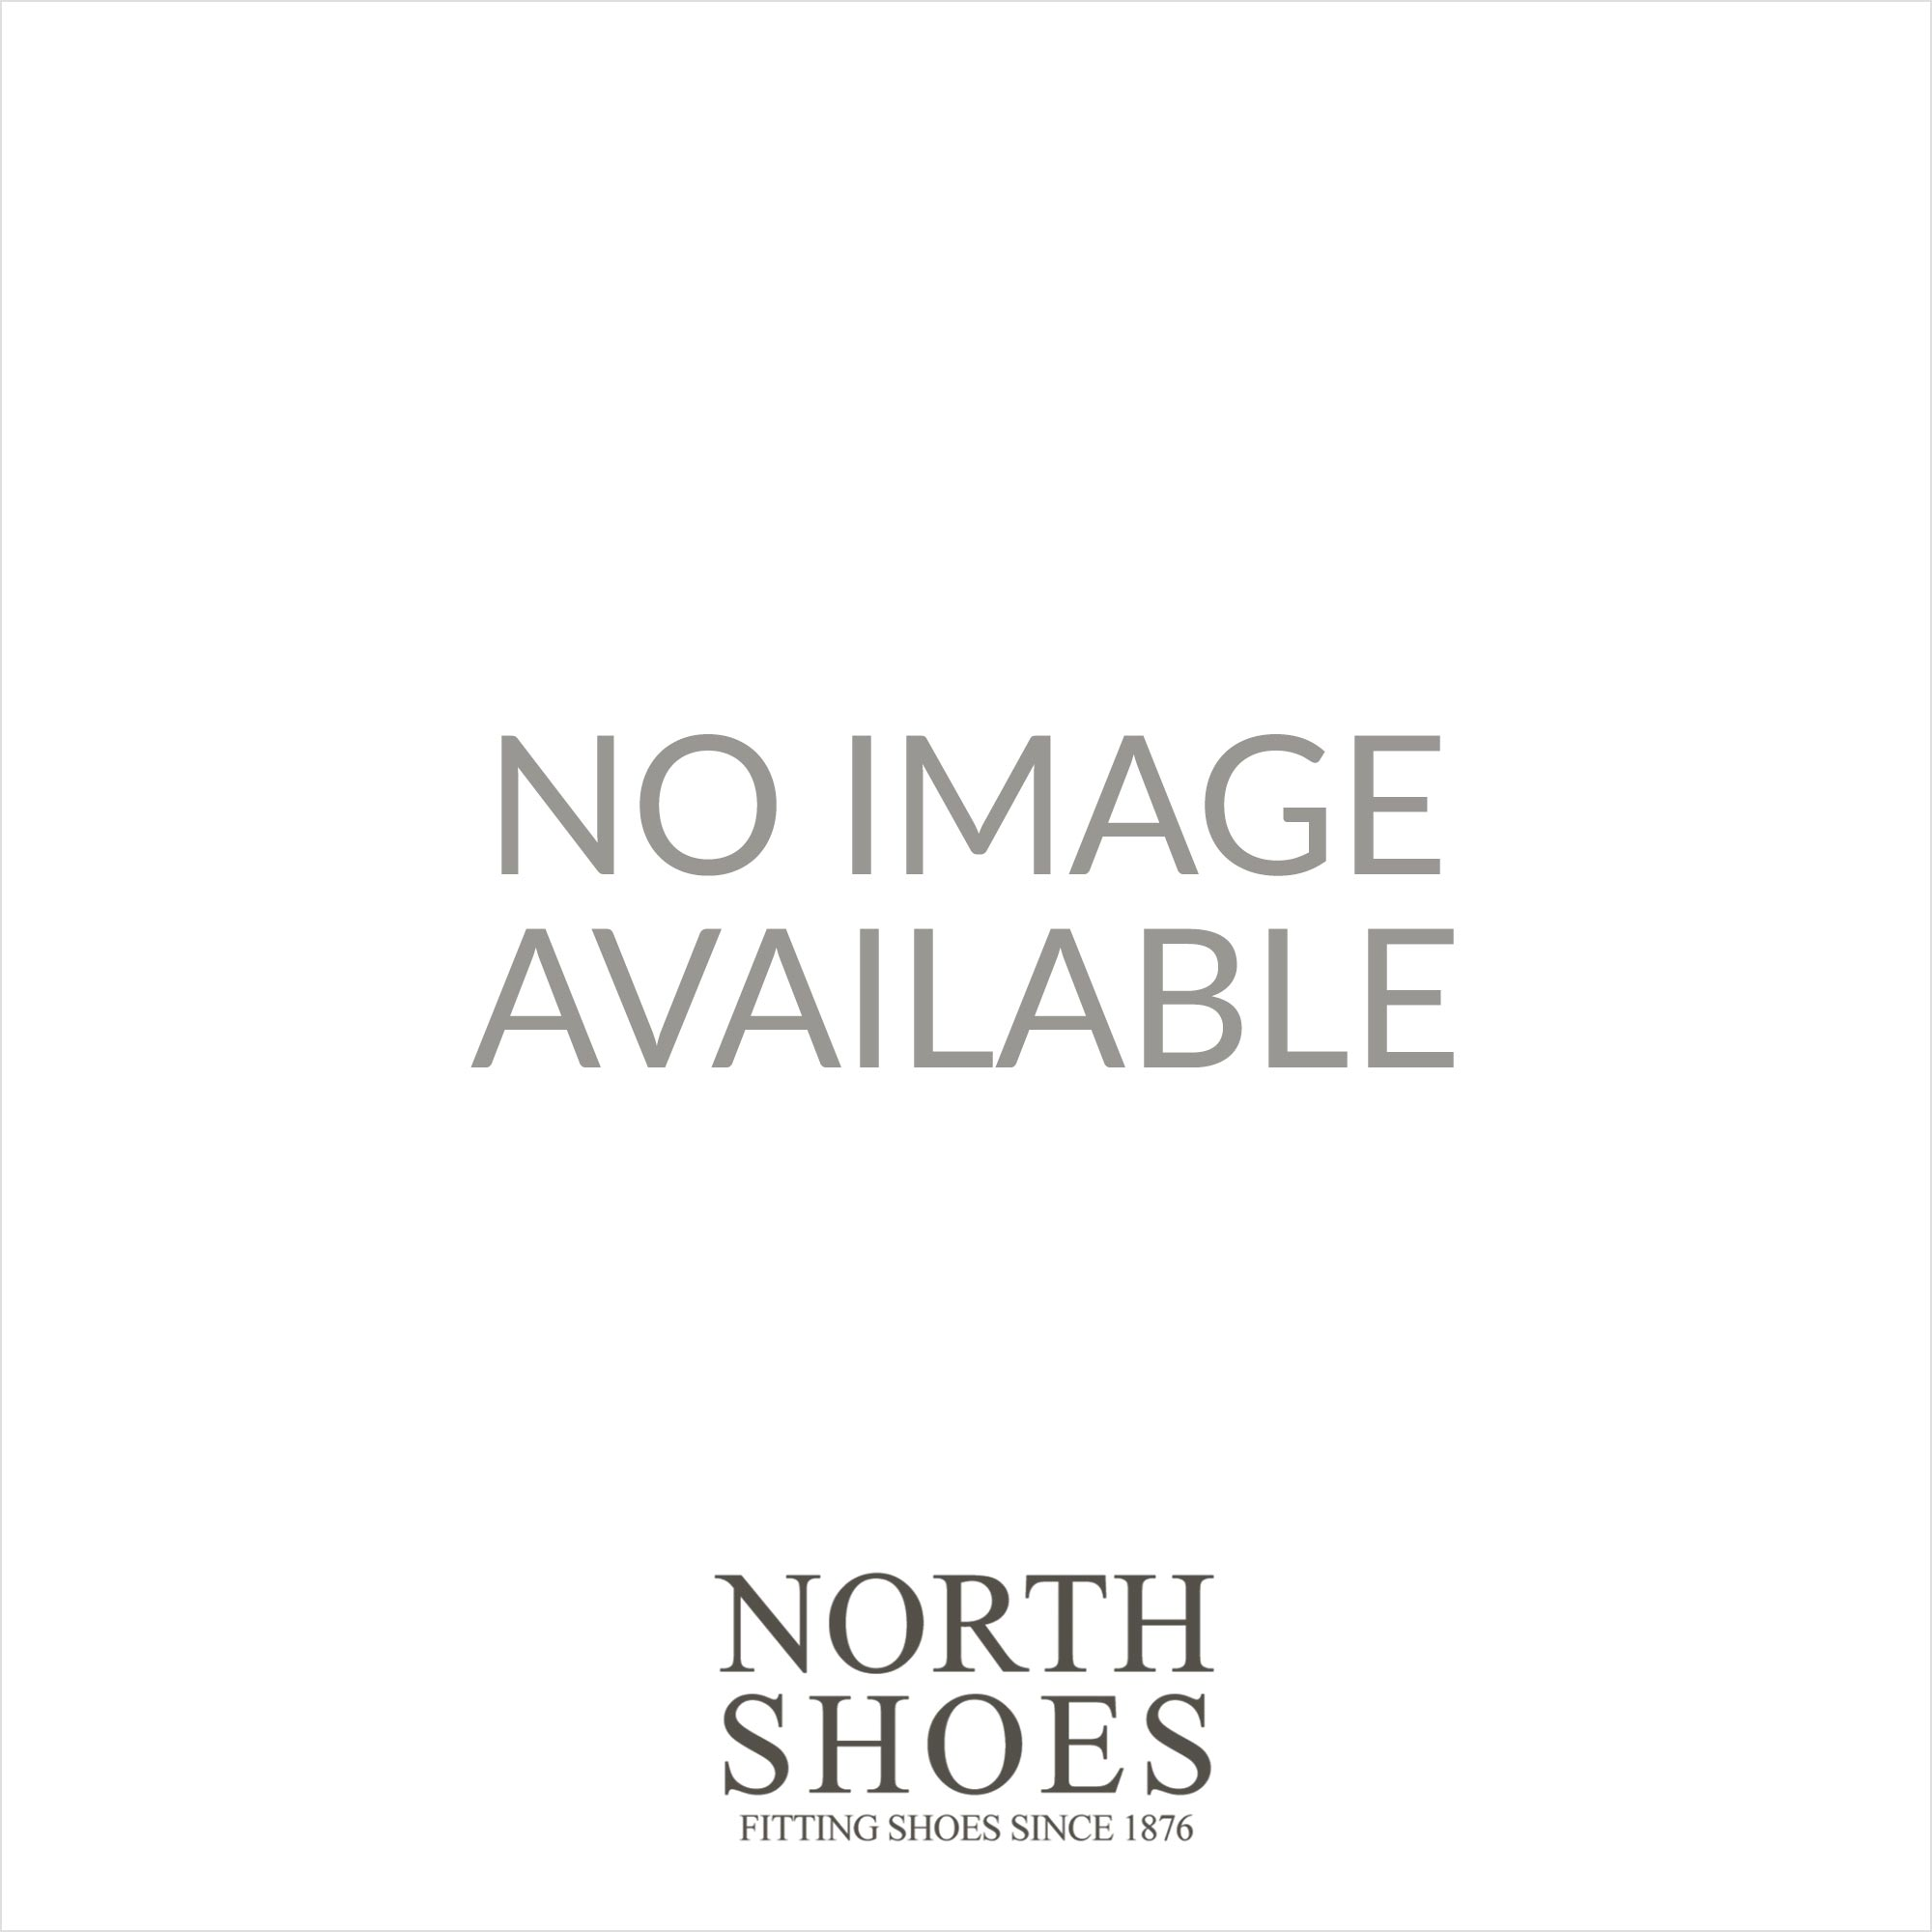 53b0f5e74775 Clarks Award Leap Infant Black Leather Boys Astro Turf Sports Trainer - UK  11 - Clarks from North Shoes UK